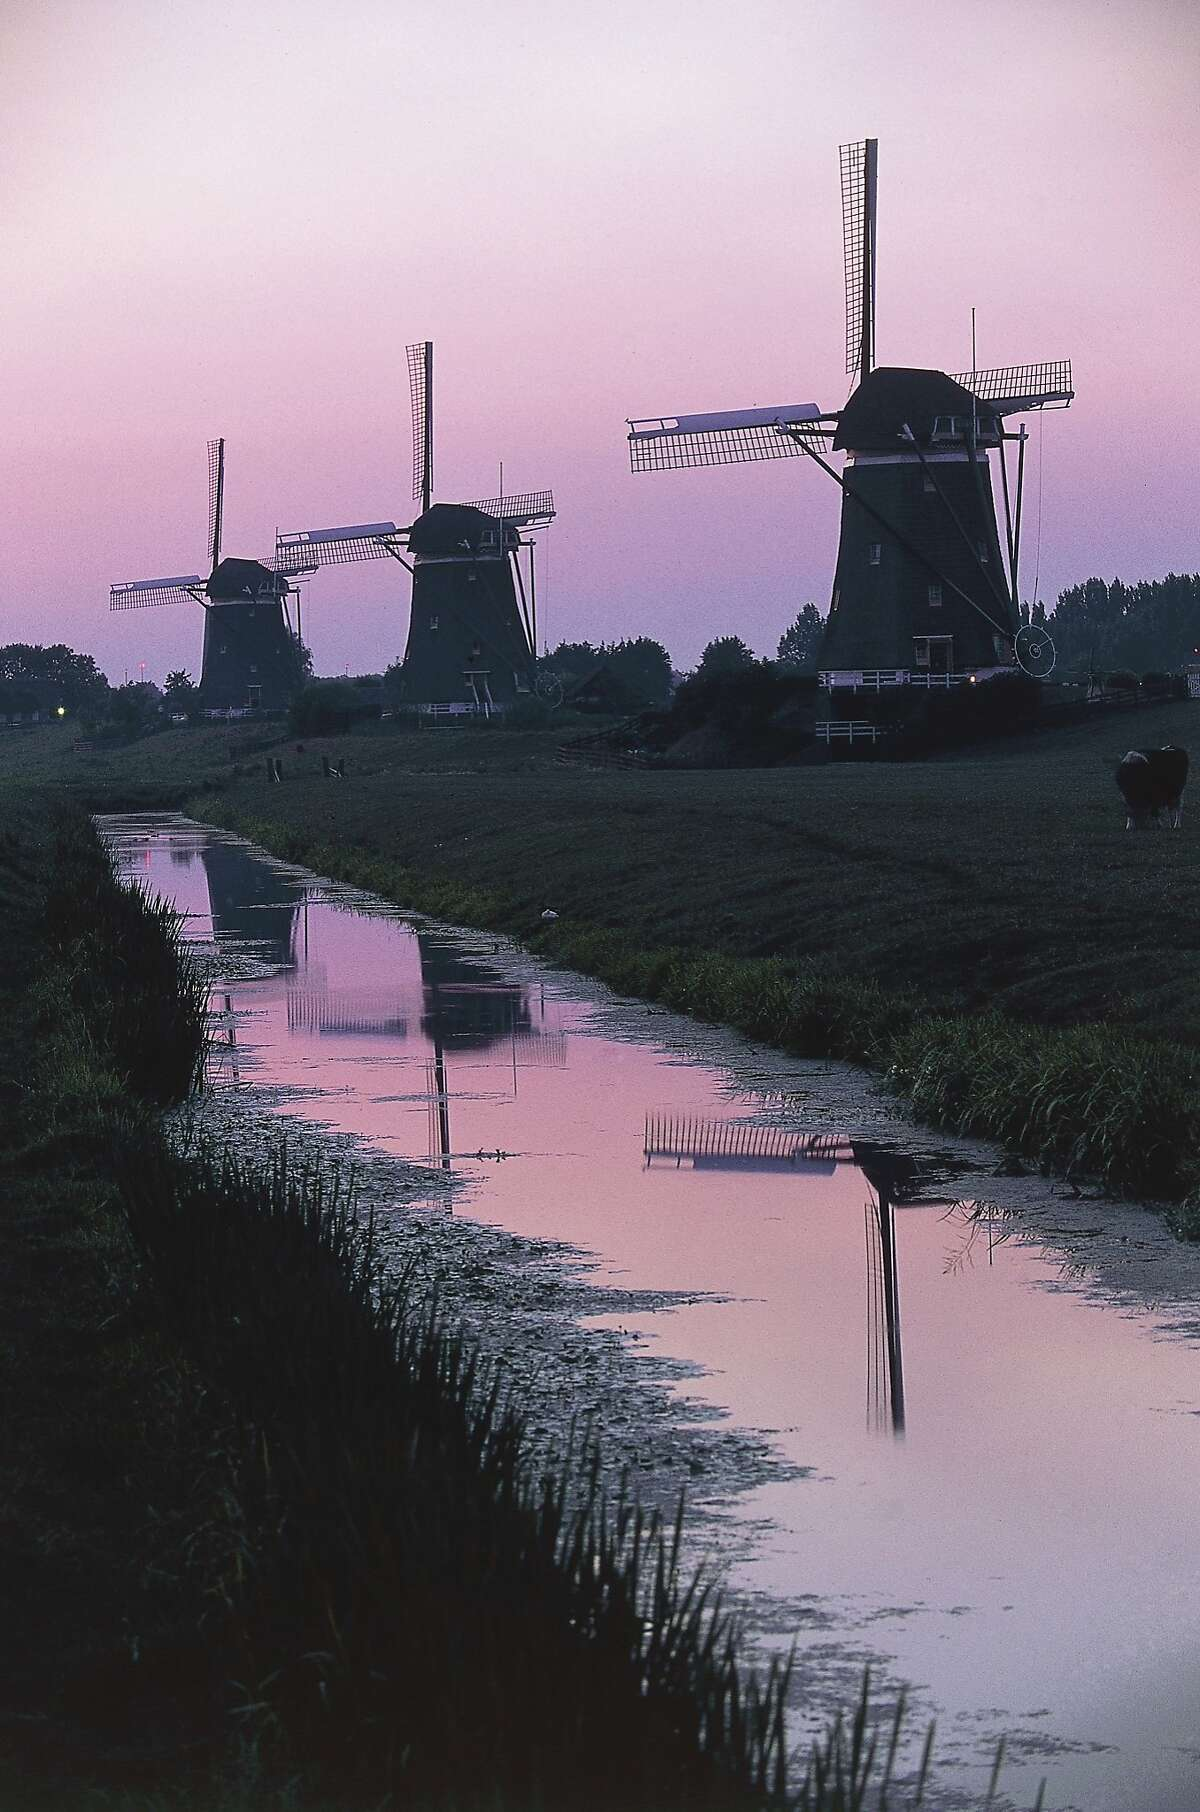 Windmills in a polder at sunset, Leidschendam, The Netherlands. (Photo by DeAgostini/Getty Images) NETHERLANDS - APRIL 08: Windmills in a polder at sunset, Leidschendam, The Netherlands. (Photo by DeAgostini/Getty Images)